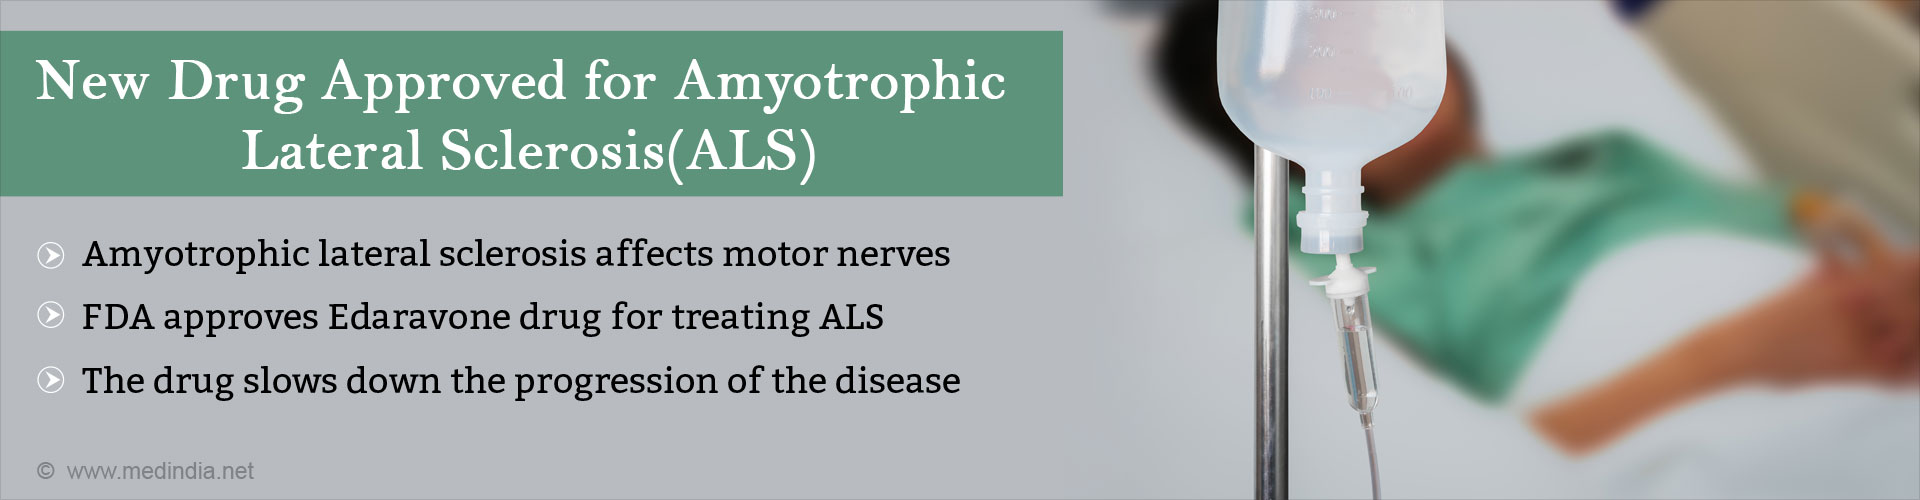 Health Tip on FDA Approved Drug for Amyotrophic Lateral Sclerosis (ALS)